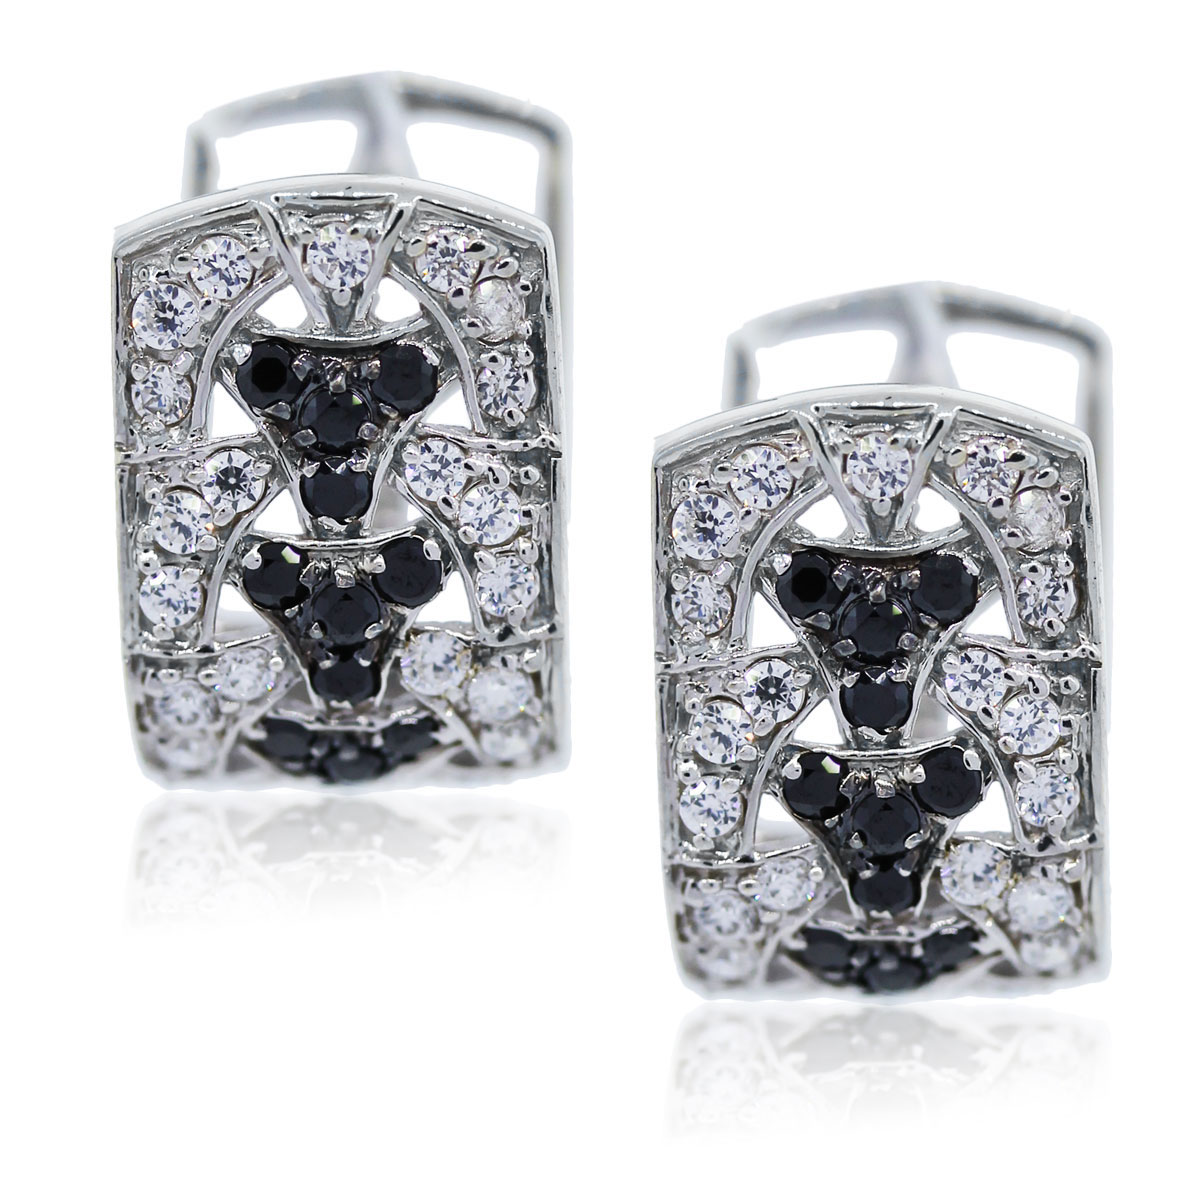 You are viewing these White Gold Black and White Diamond Earrings!